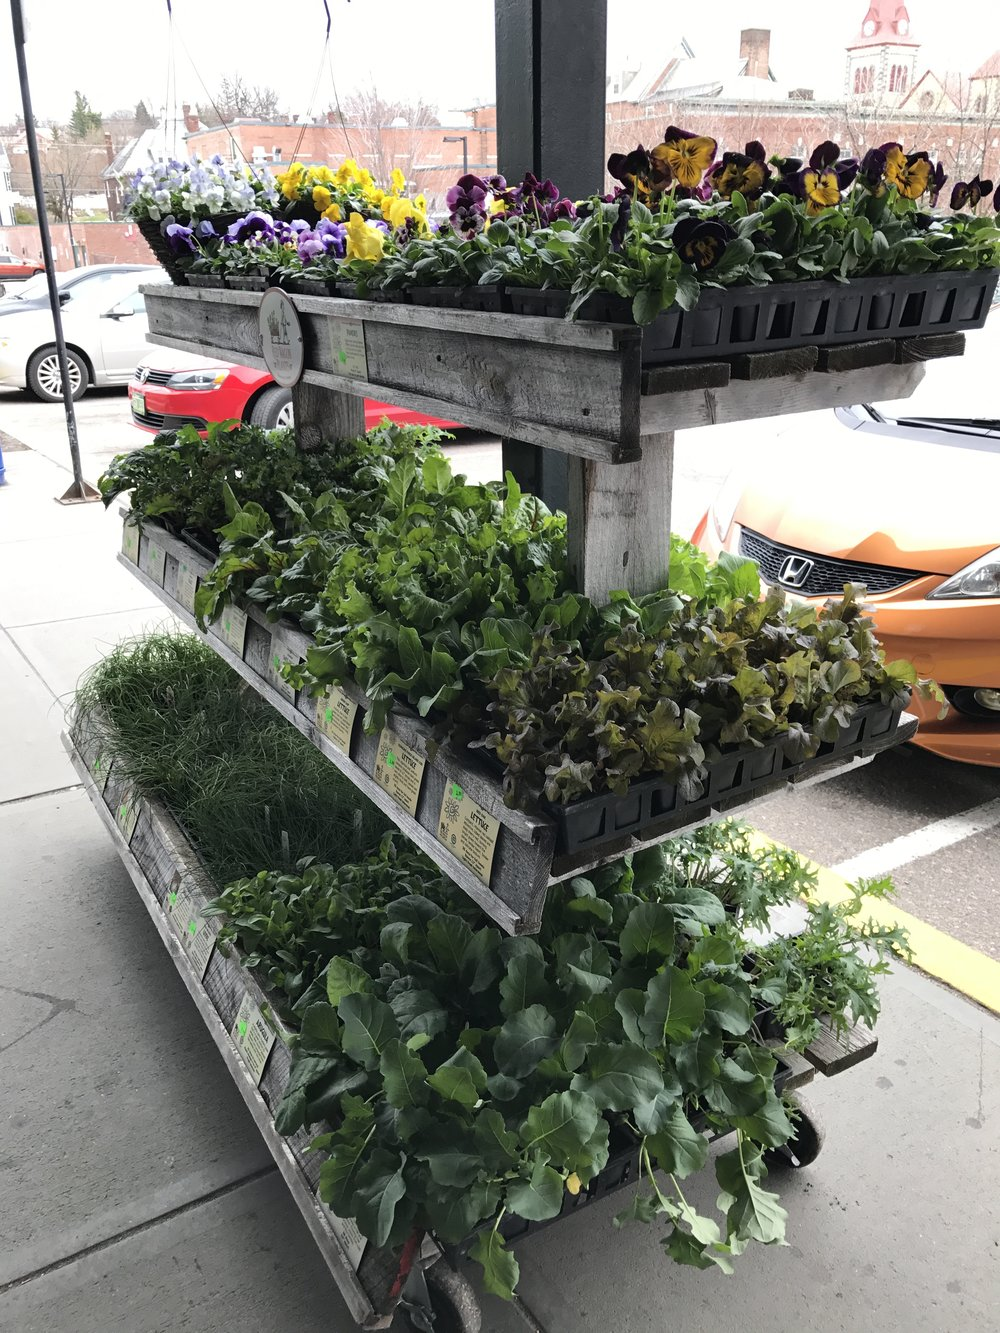 City Market / Onion River Coop got their first rack of plants as well.